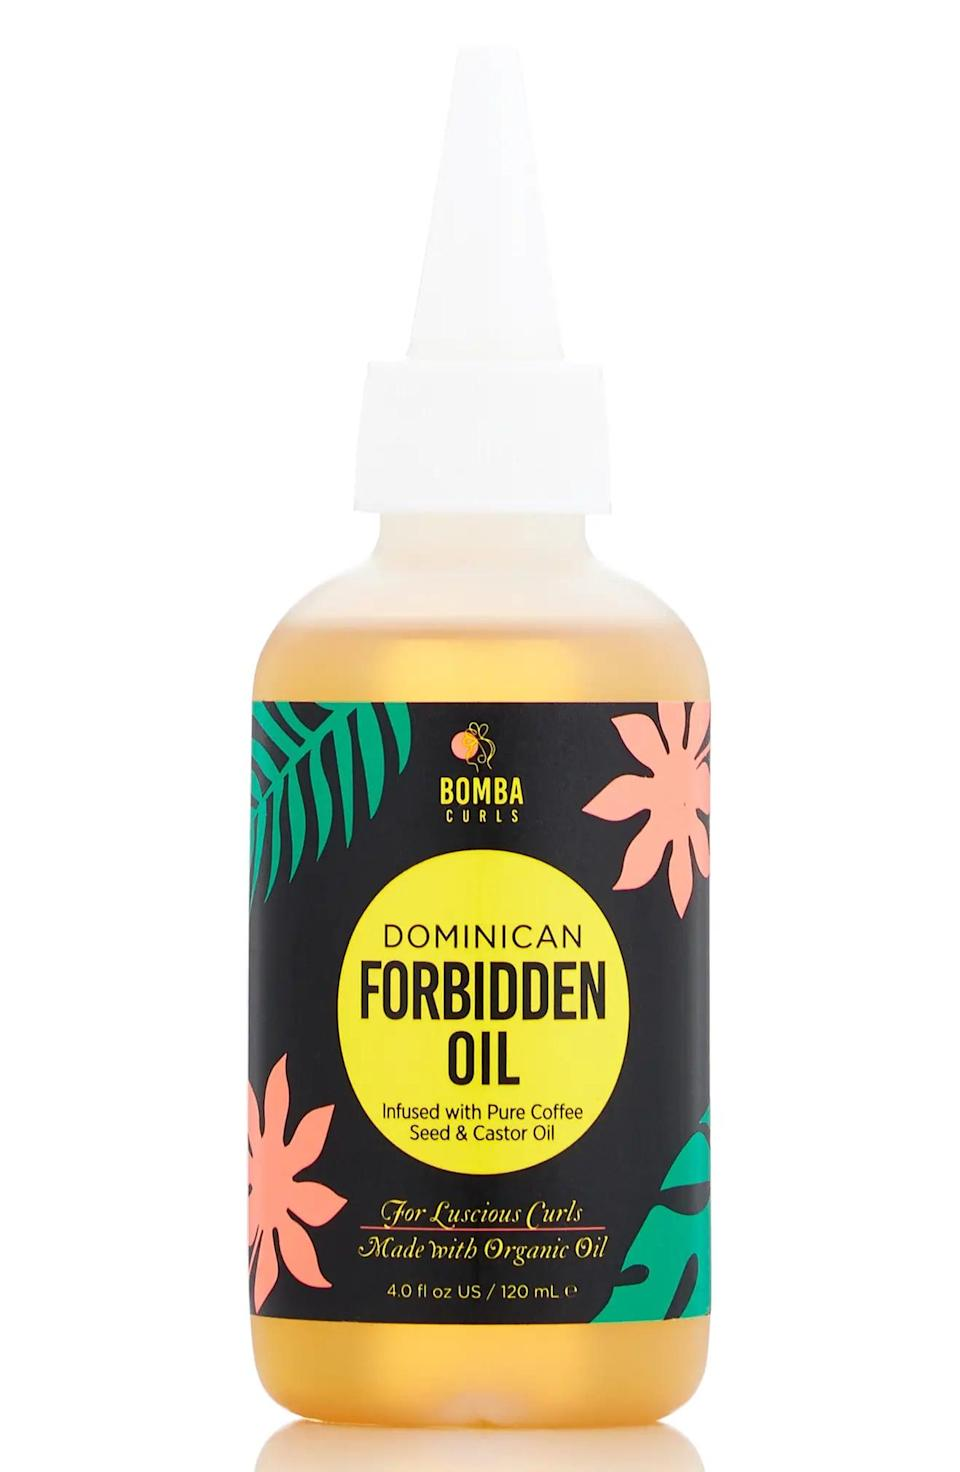 <p>The <span>Bomba Curls Dominican Forbidden Oil</span> ($22) is a multipurpose oil. It can be used as a pre-shampoo treatment or an overnight mask to reduce frizz and add shine to your hair. </p>